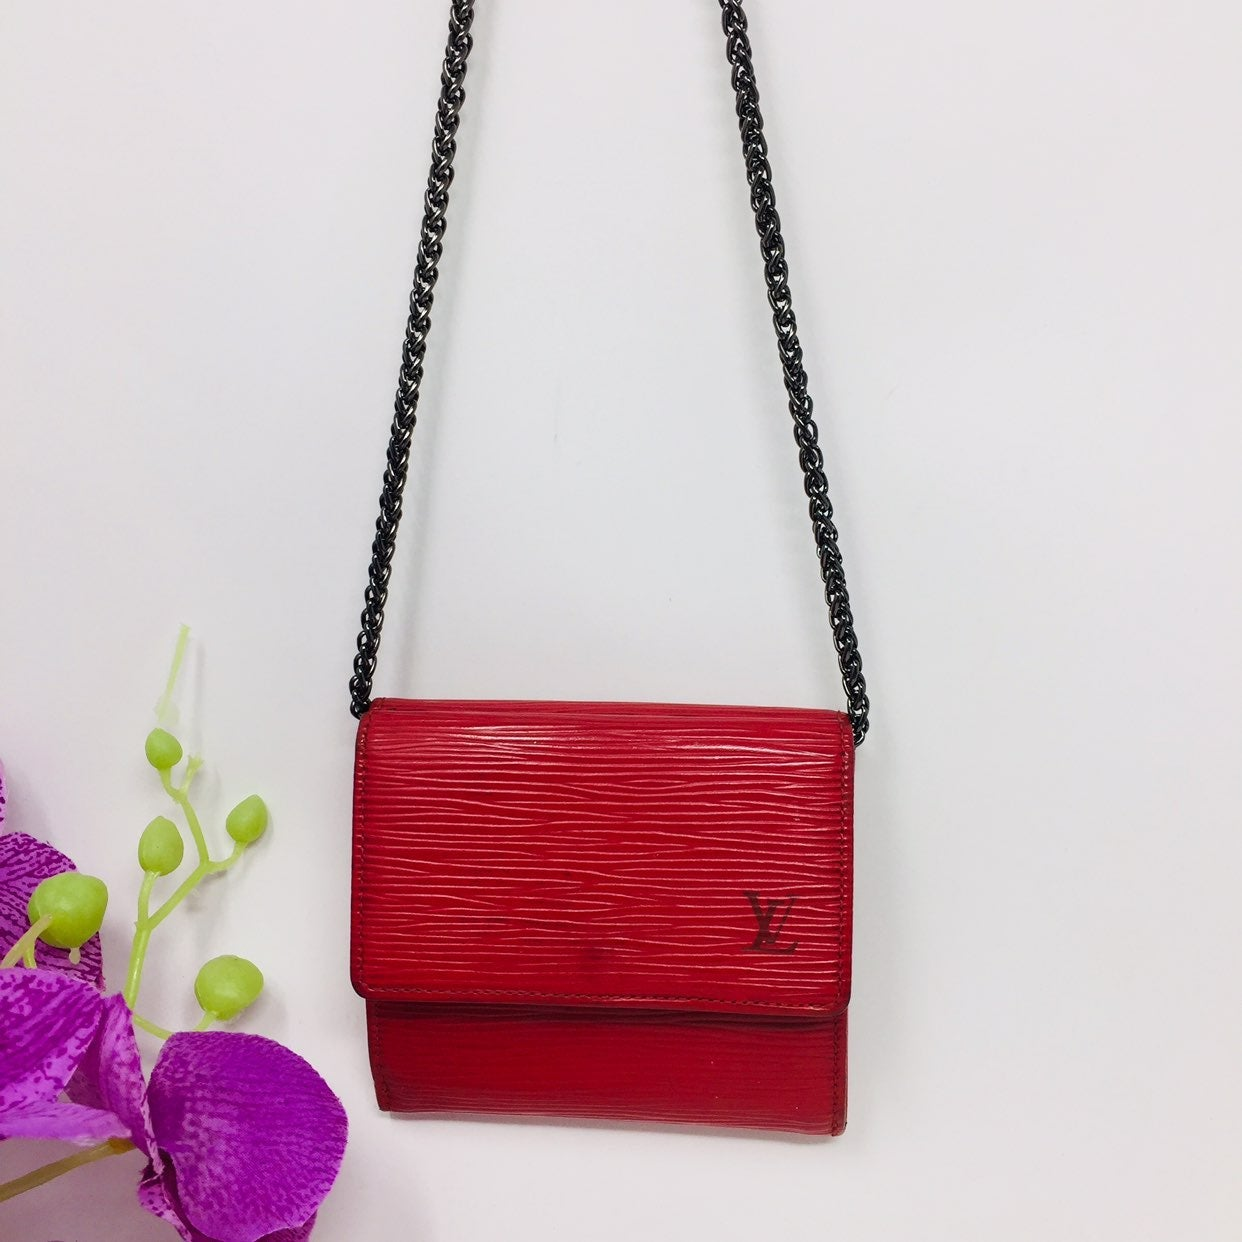 Authentic Preowned Louis Vuitton Red Sma